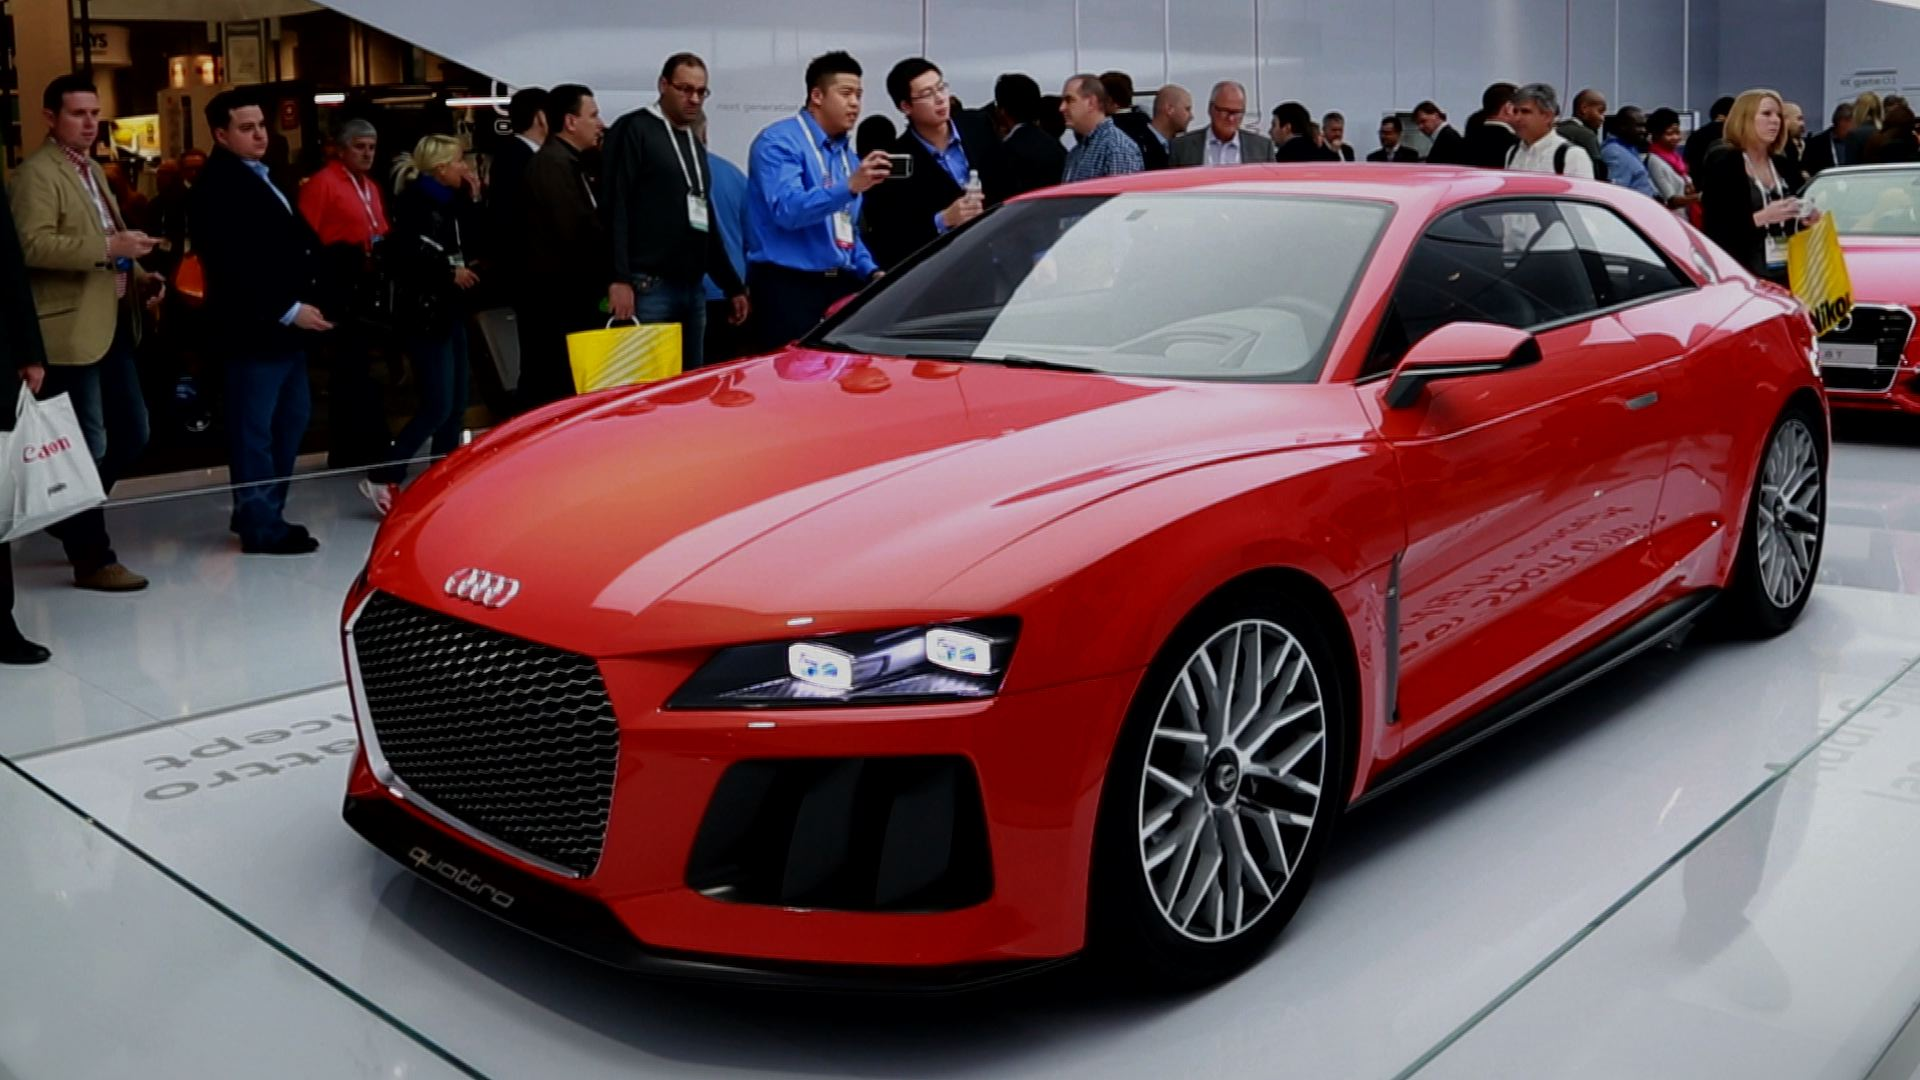 2019 Audi Sport quattro Laserlight Concept | Car Photos ...